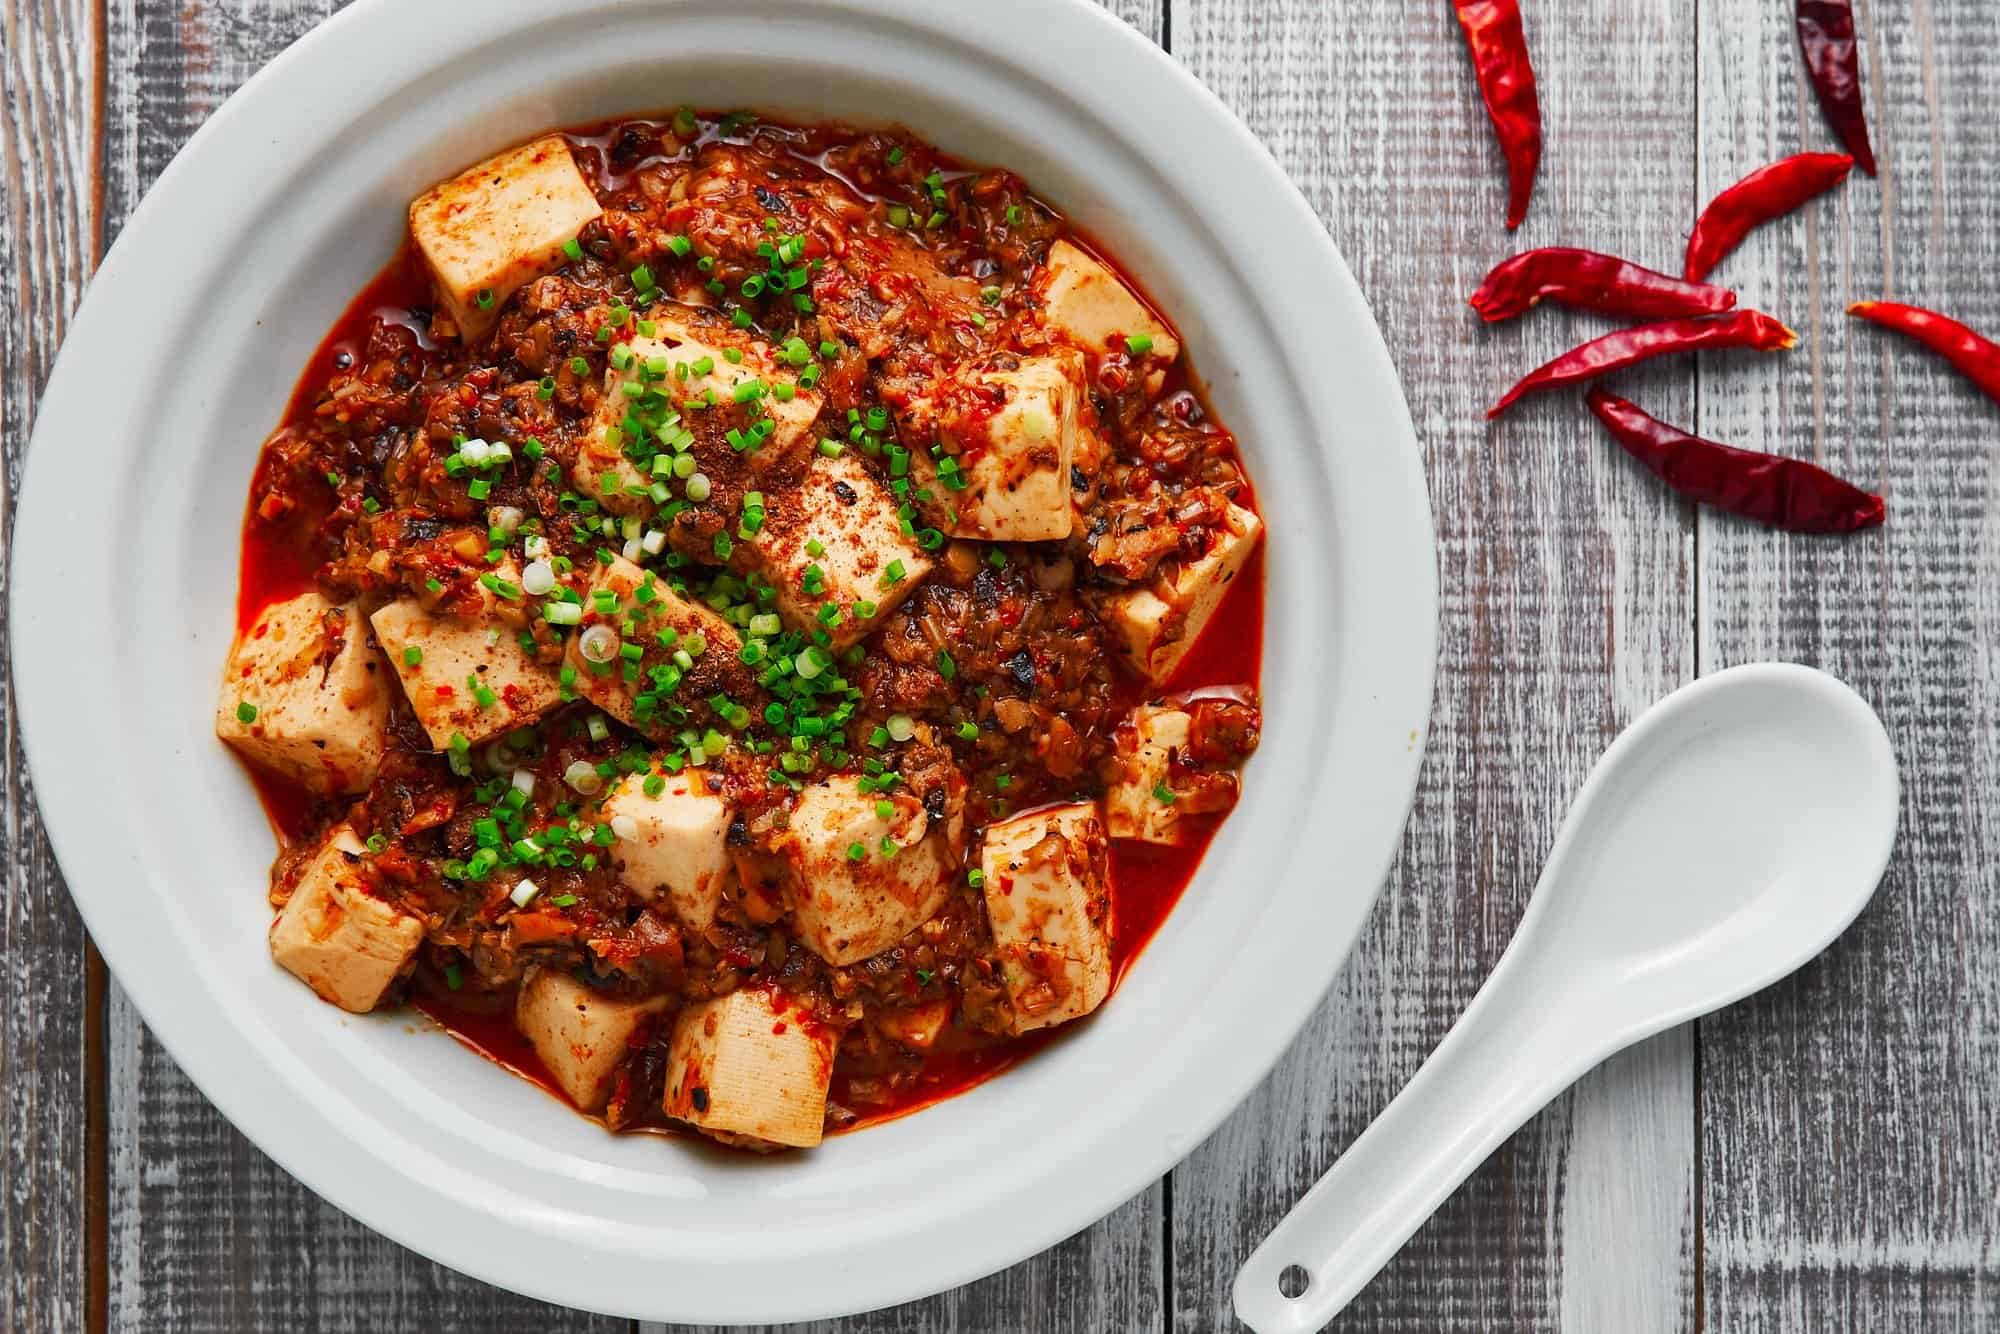 This Vegan Mapo Tofu is loaded with creamy blocks of tofu in a fiery Sichuan sauce made from ground mushrooms and fermented black soybeans.